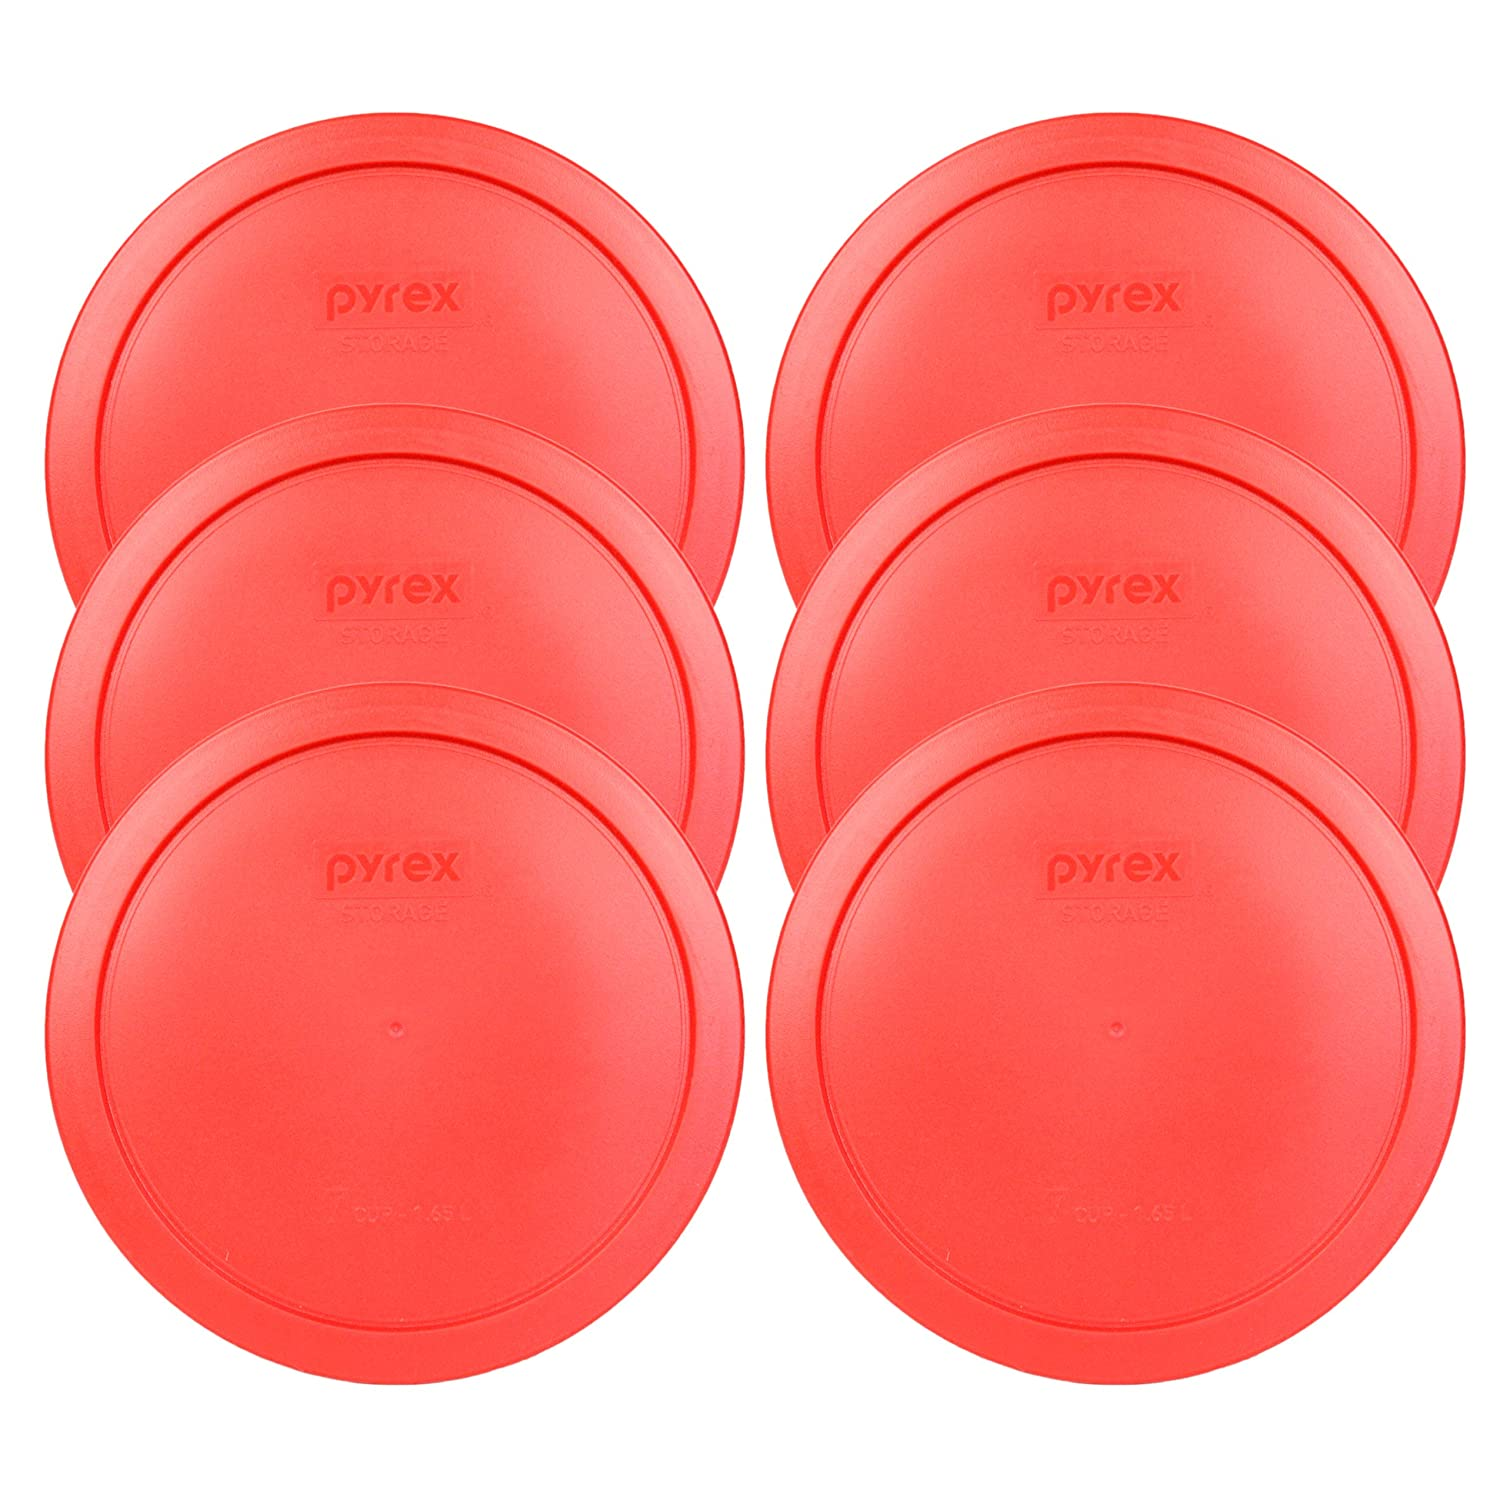 Round 4-Pack Pyrex 7402-PC Red Round Storage Replacement Lid Cover fits 6 /& 7 Cup 7 Dia